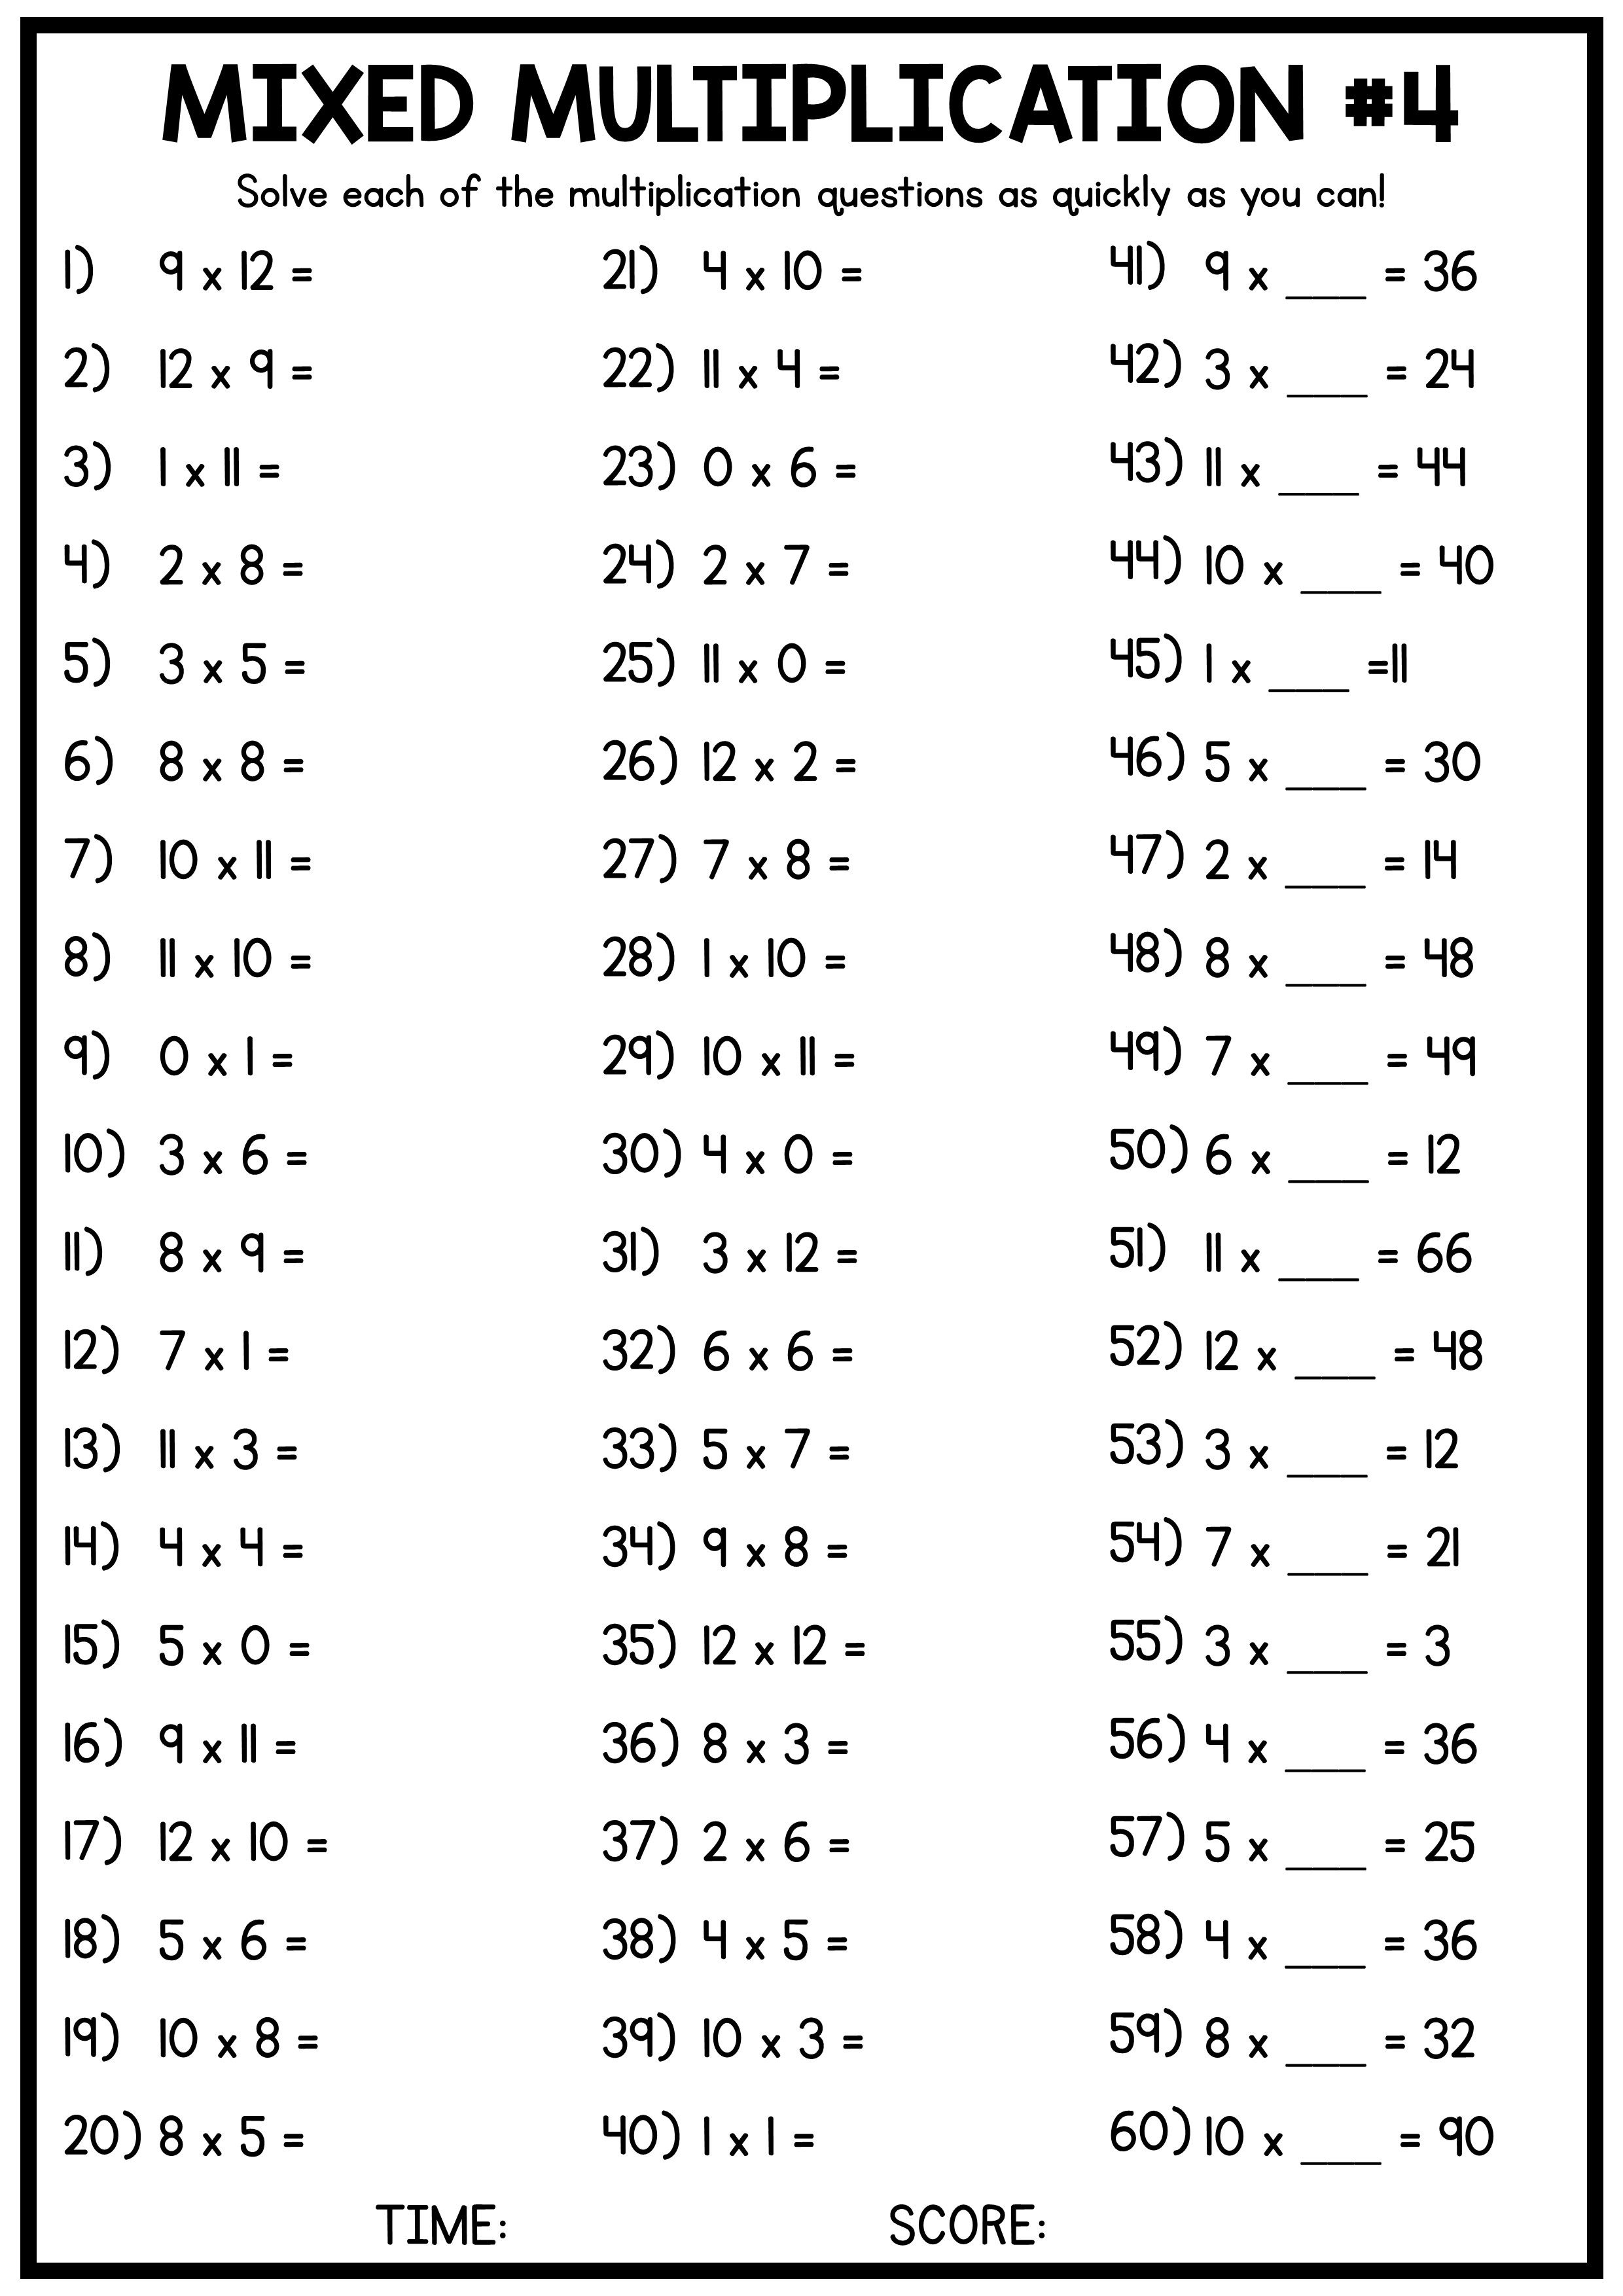 Mixed Multiplication Times Table Worksheets 4 Free Worksheets Multiplication Worksheets Math Multiplication Worksheets Mental Maths Worksheets